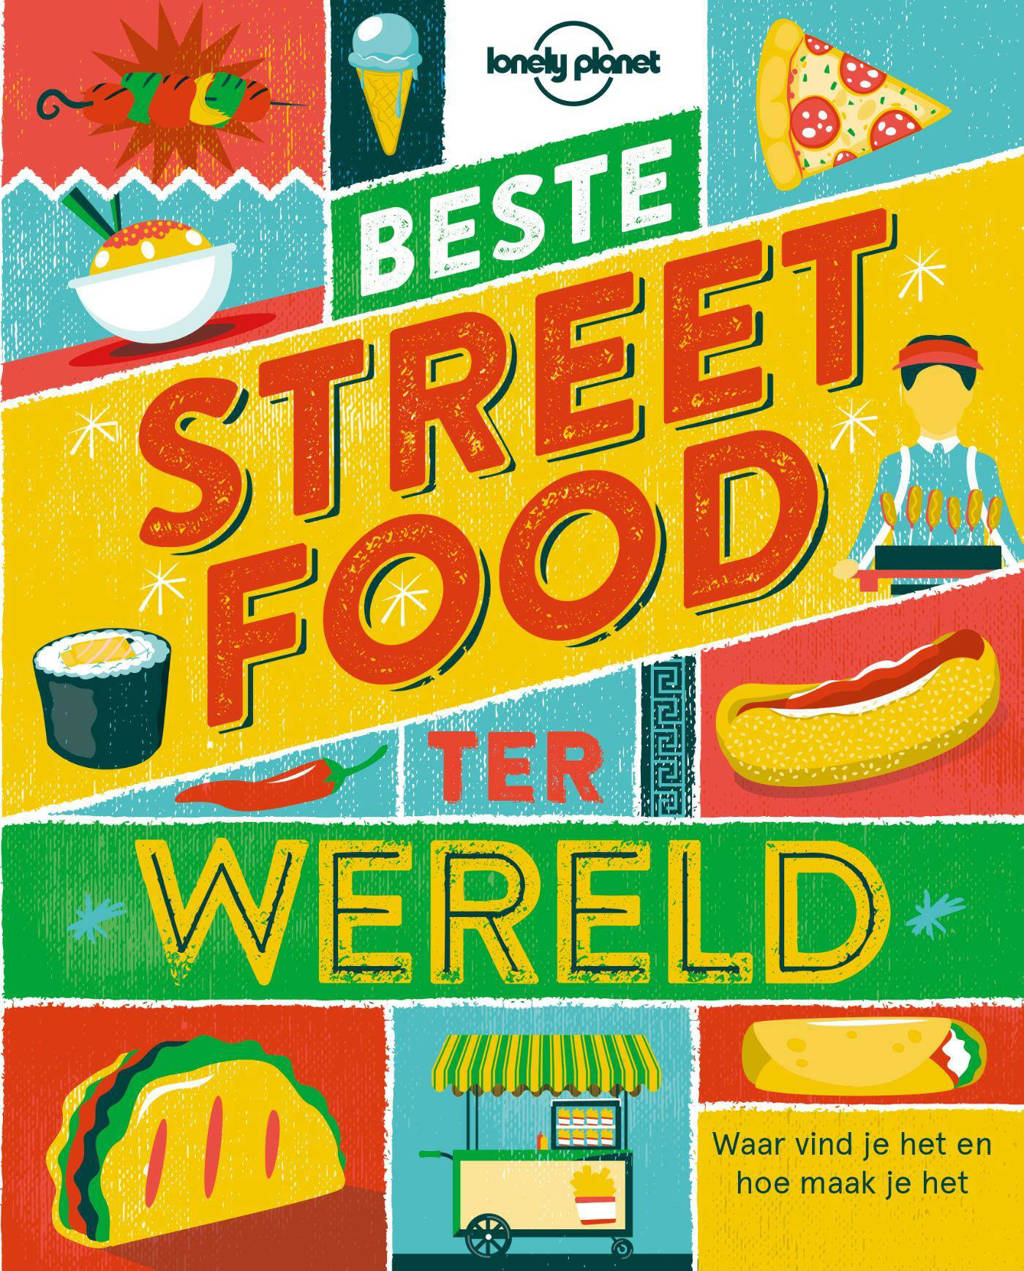 Lonely planet: Beste streetfood ter wereld - Lonely Planet